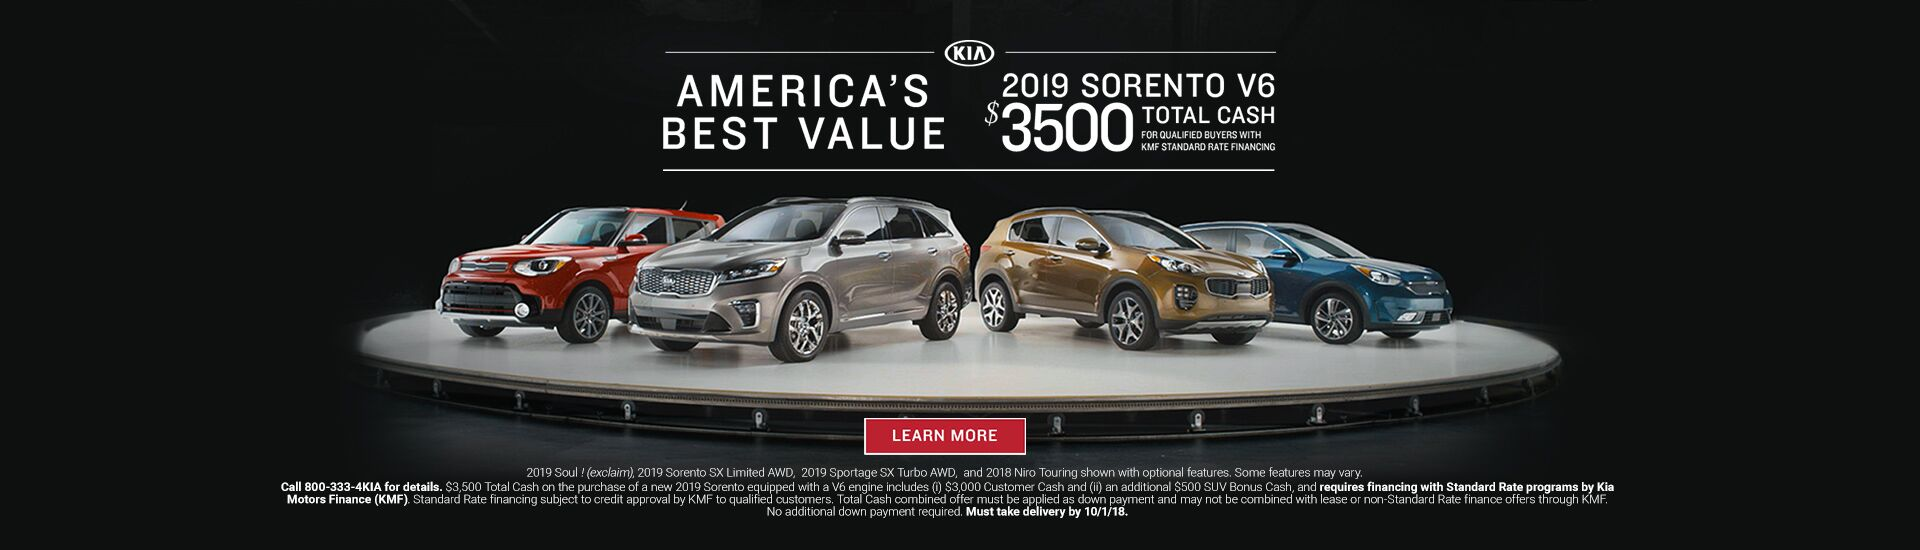 America's Best Value 2019 Sorento Seelye Kia of Battle Creek